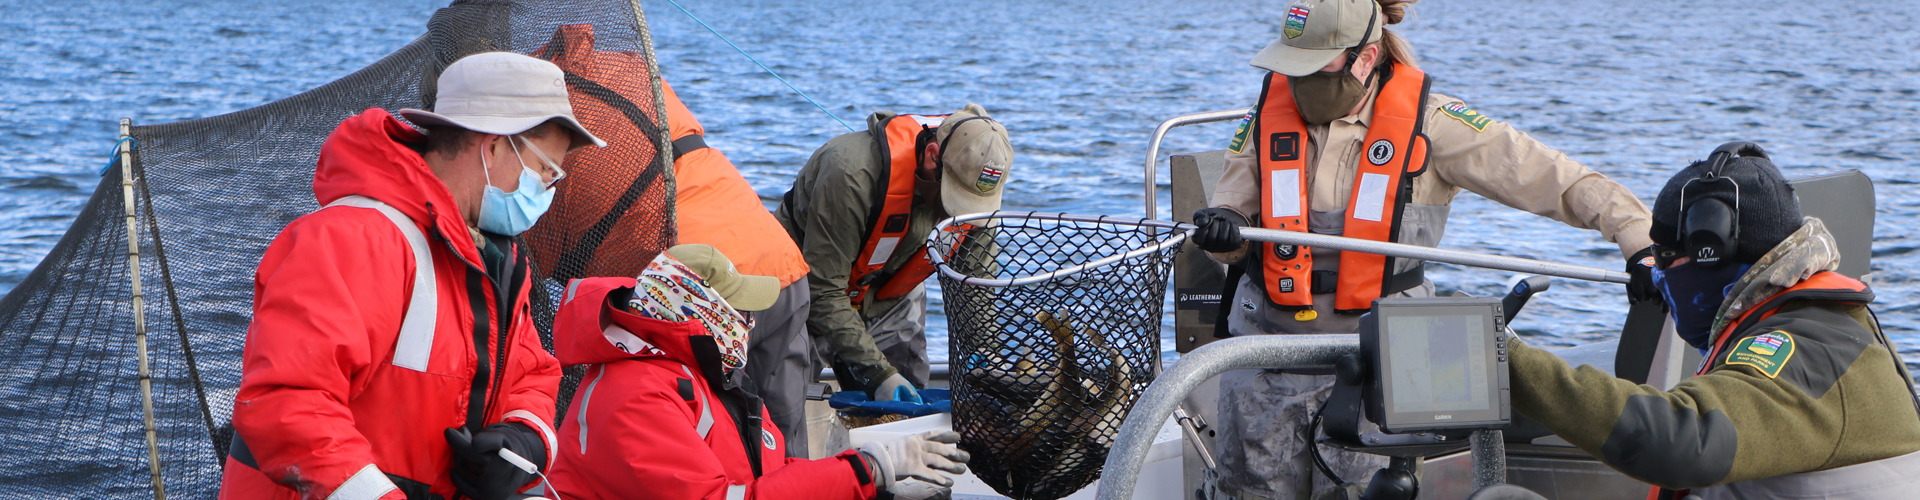 Walleye Stocking Program: Collecting wild eggs and milt to create put-grow-take fisheries.